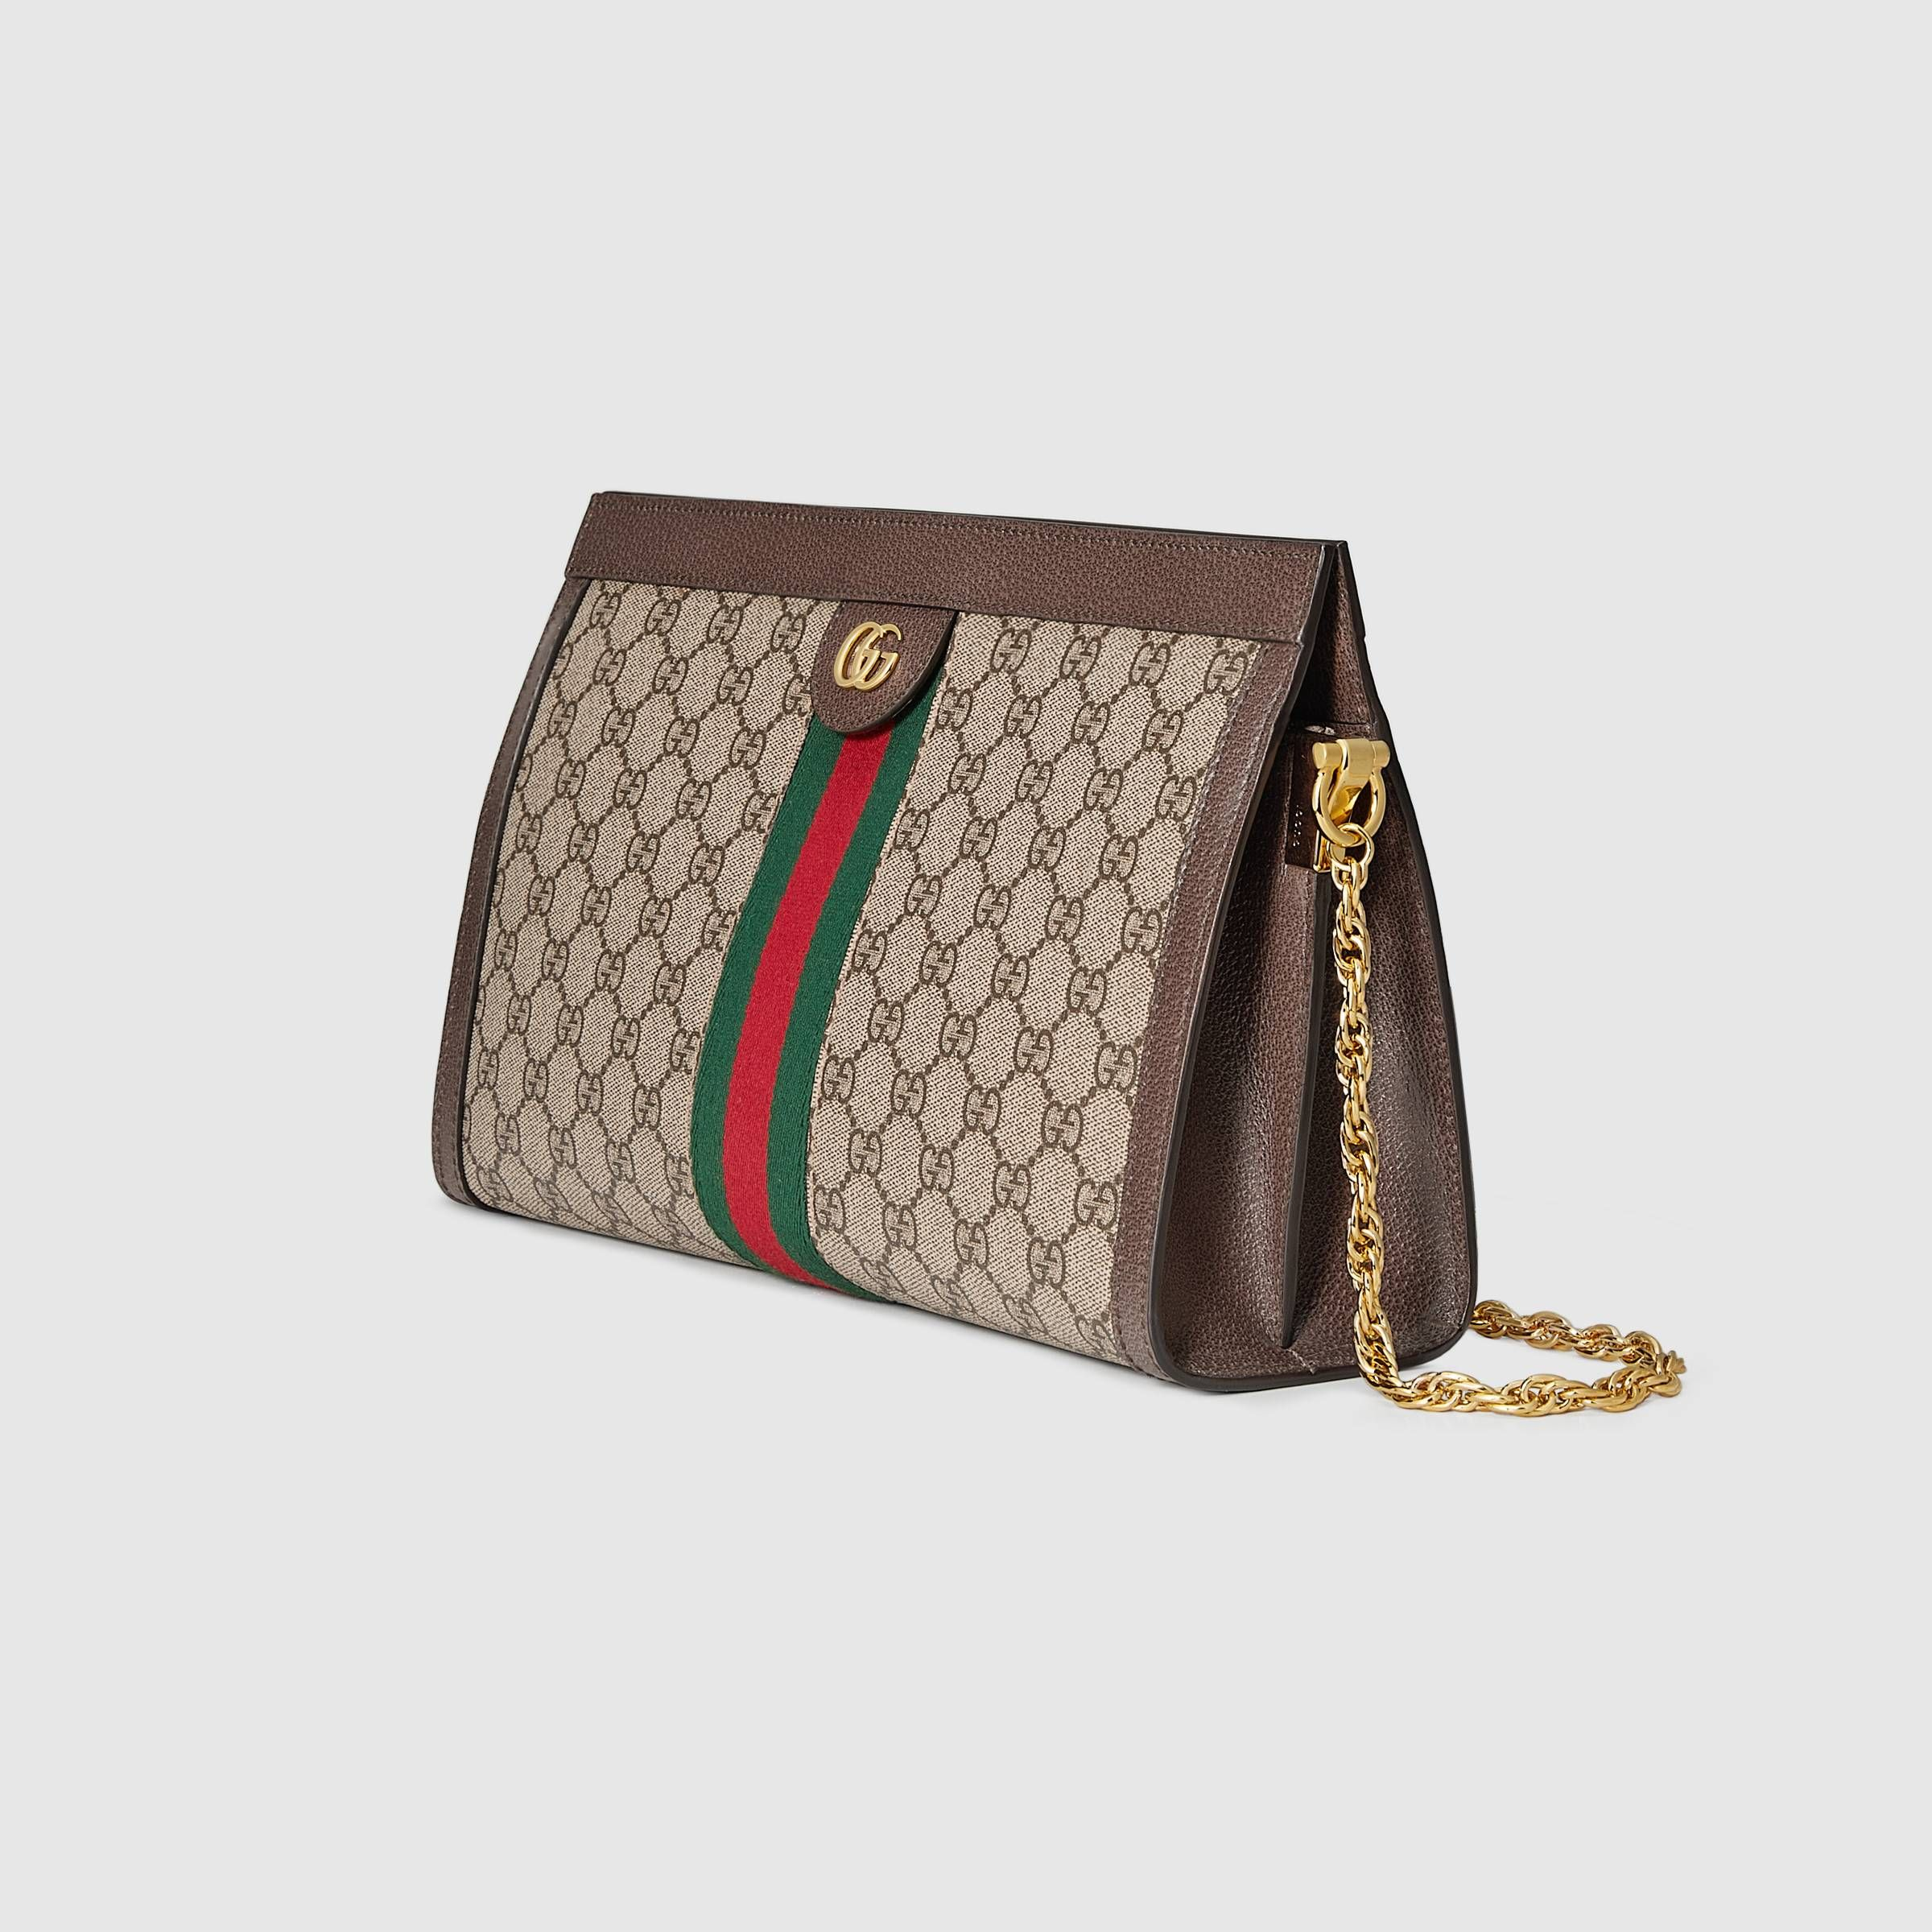 47ed1ed2f6b Gucci Ophidia GG Supreme shoulder bag Detail 2